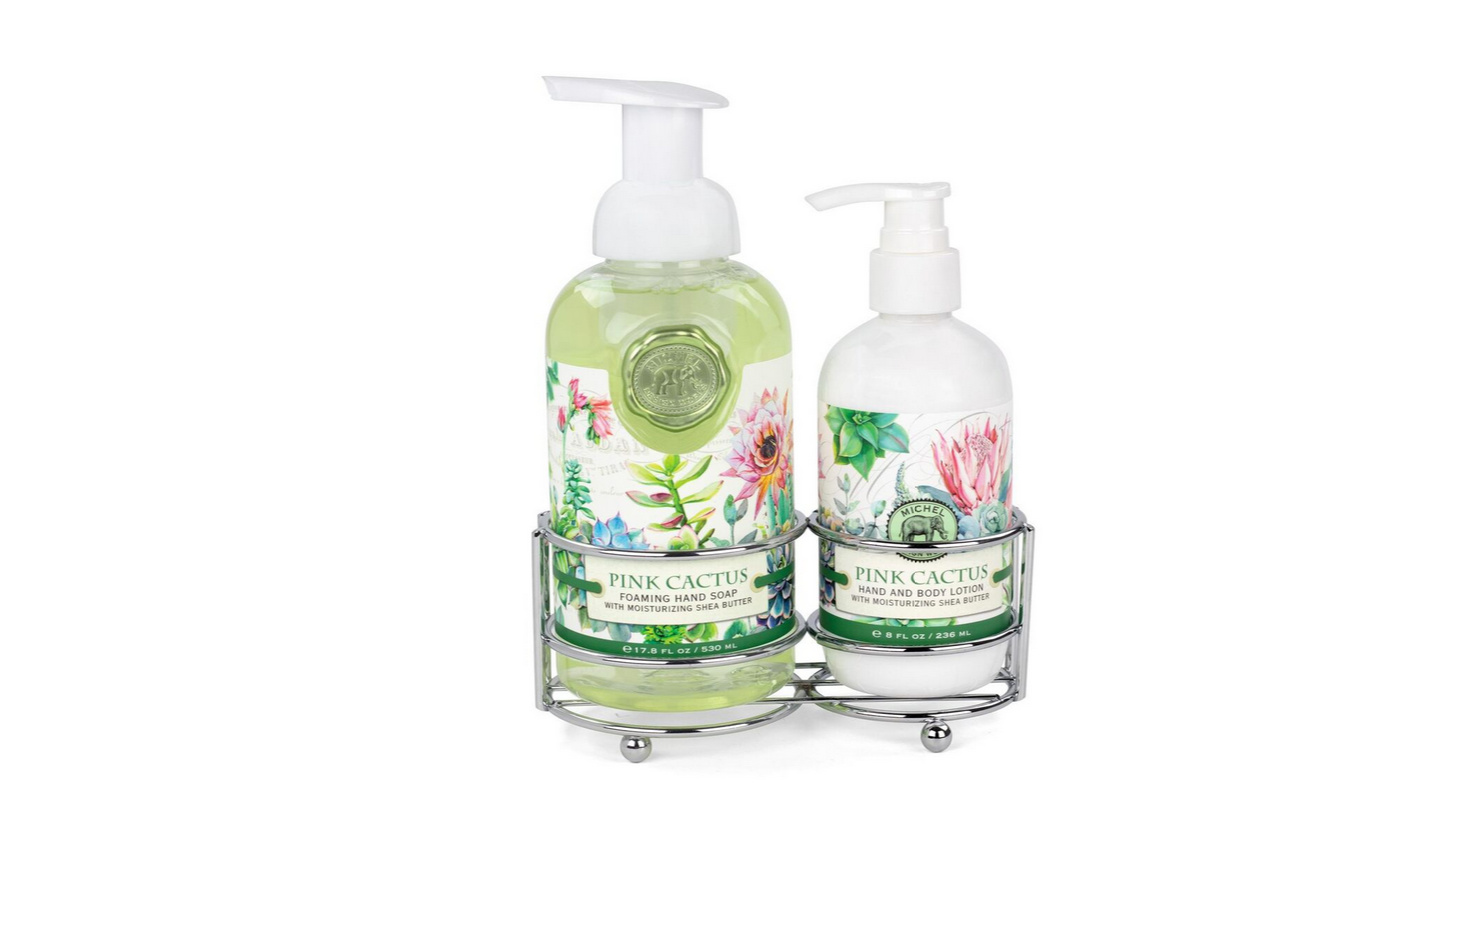 Pink Cactus Scented Hand Care Caddy Set